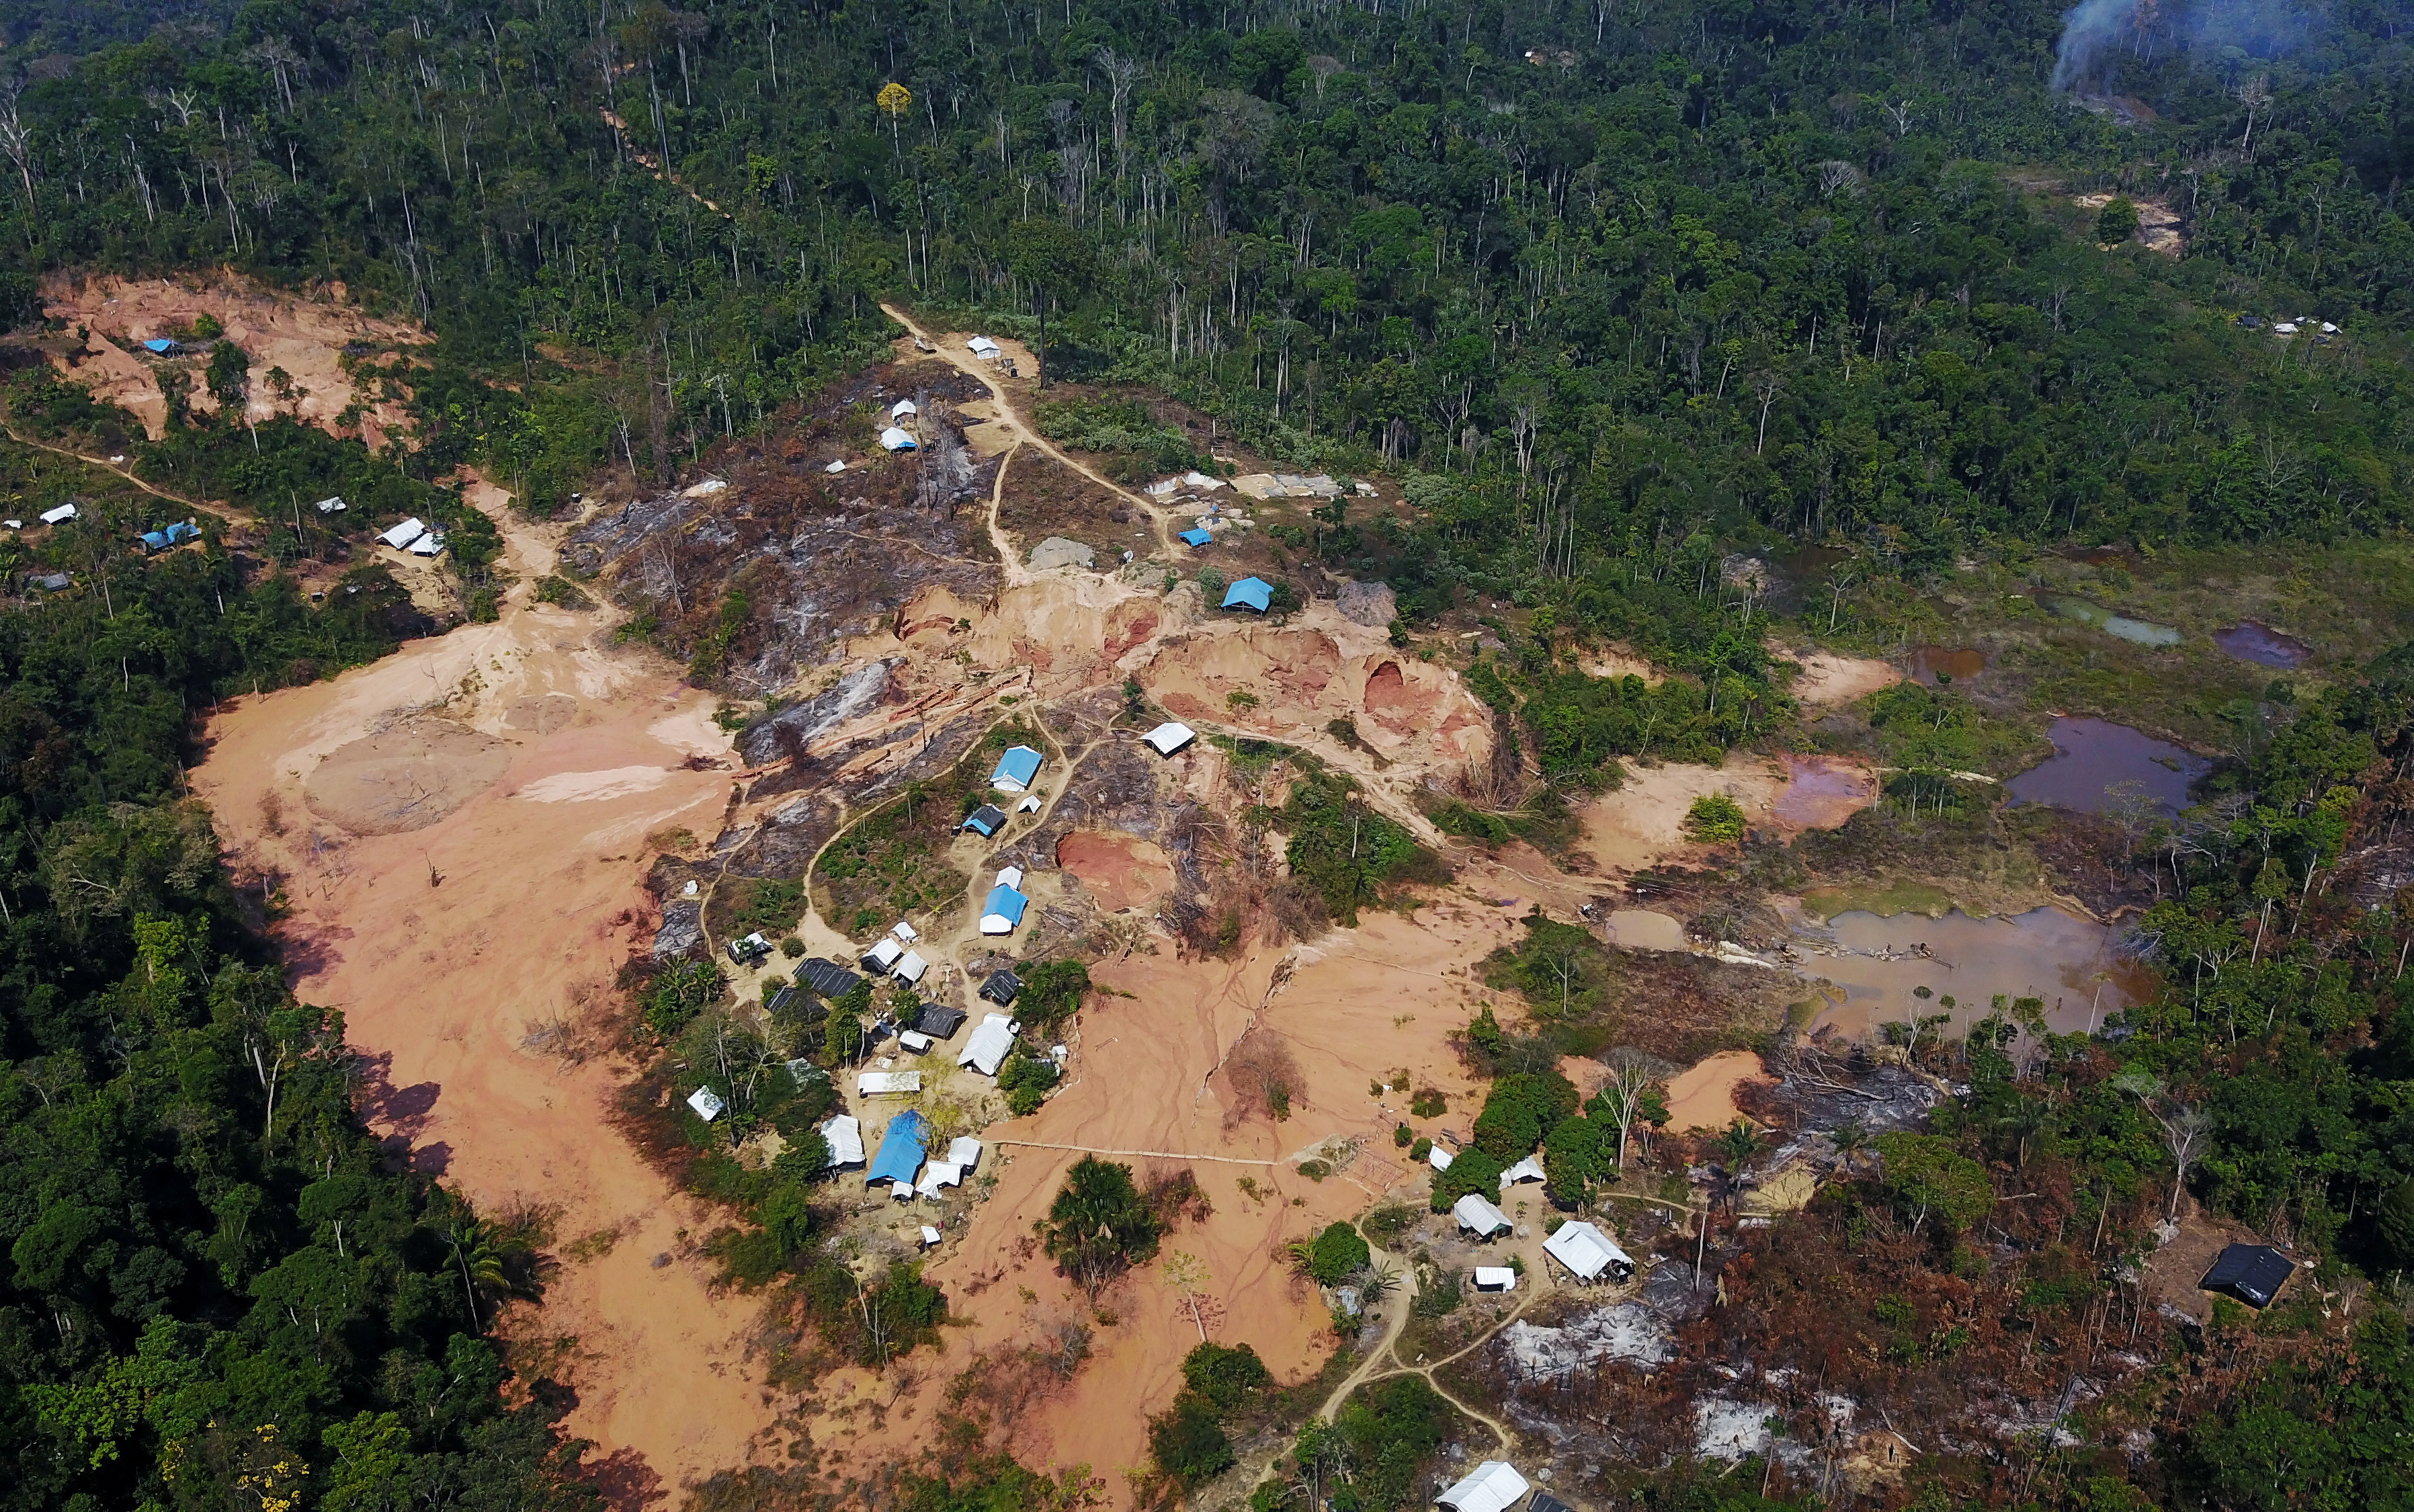 An aerial view show a wildcat gold mine, also known as a garimpo, at a deforested area of the Amazon rainforest near Crepurizao, in the municipality of Itaituba, Para State, Brazil, August 6, 2017. Picture taken with a drone.  REUTERS/Nacho Doce/File Photo